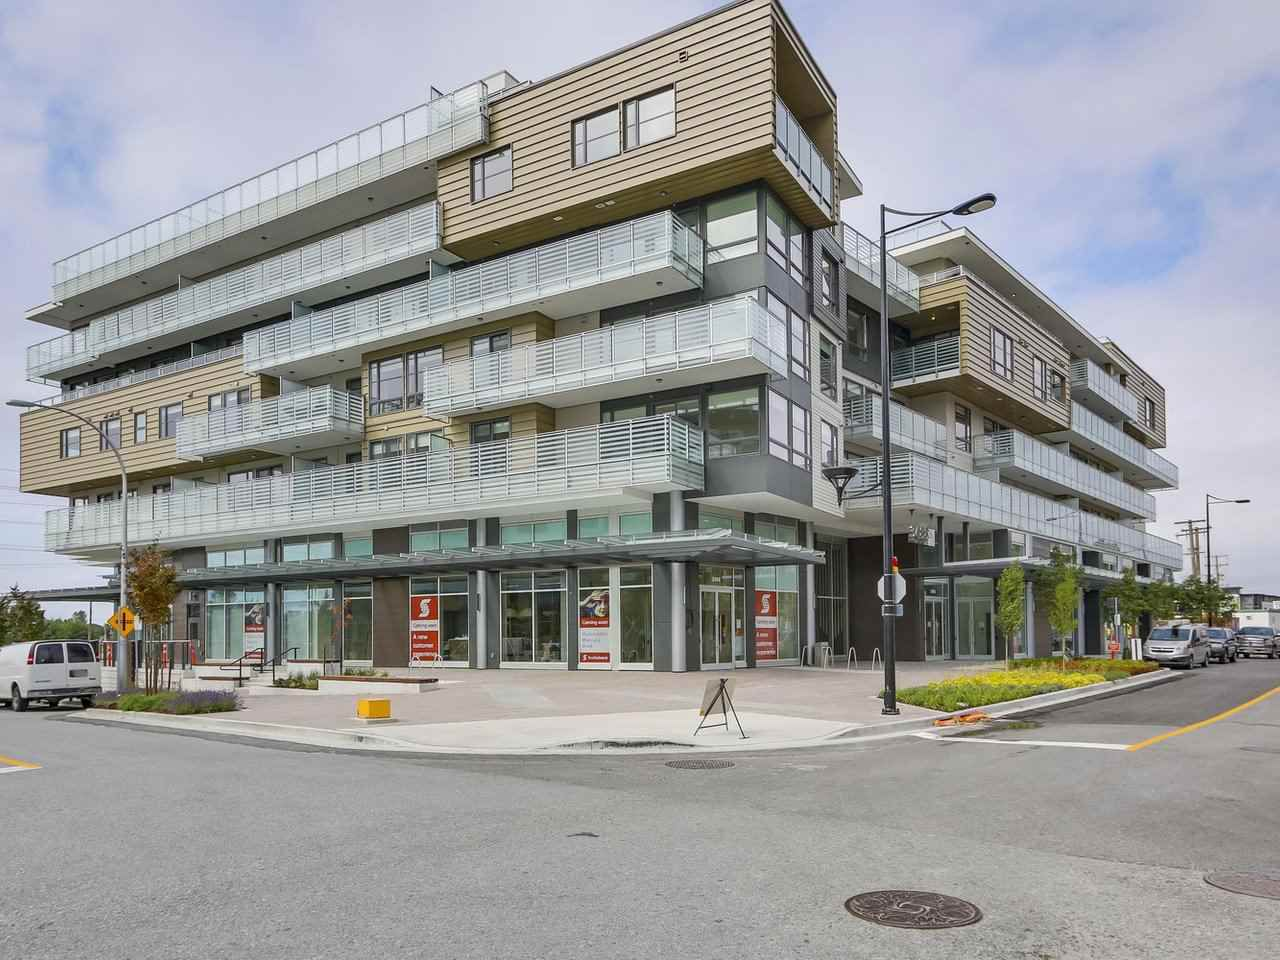 """Main Photo: 609 3488 W SAWMILL Crescent in Vancouver: Champlain Heights Condo for sale in """"THREE TOWN CENTER"""" (Vancouver East)  : MLS®# R2298460"""